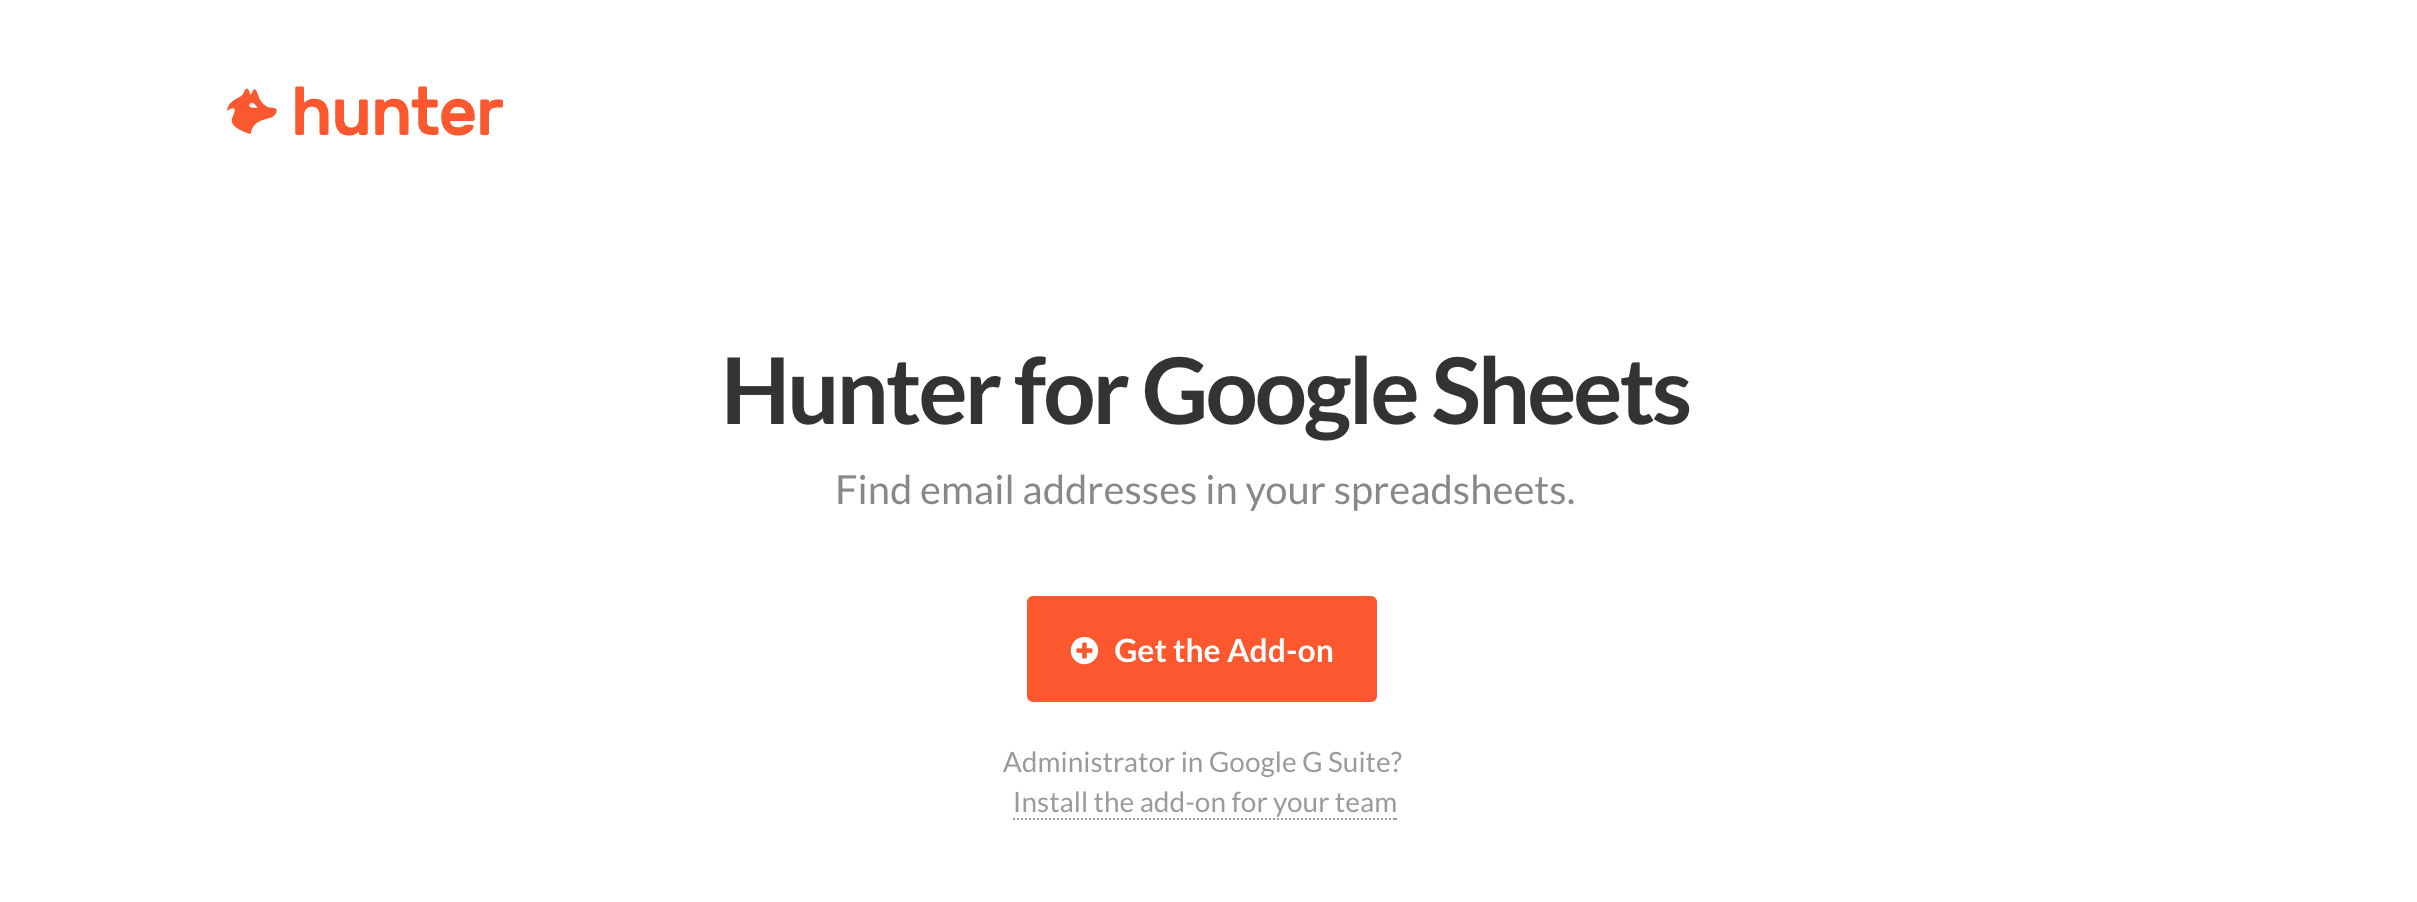 Hunter Google Sheets Add-on Page